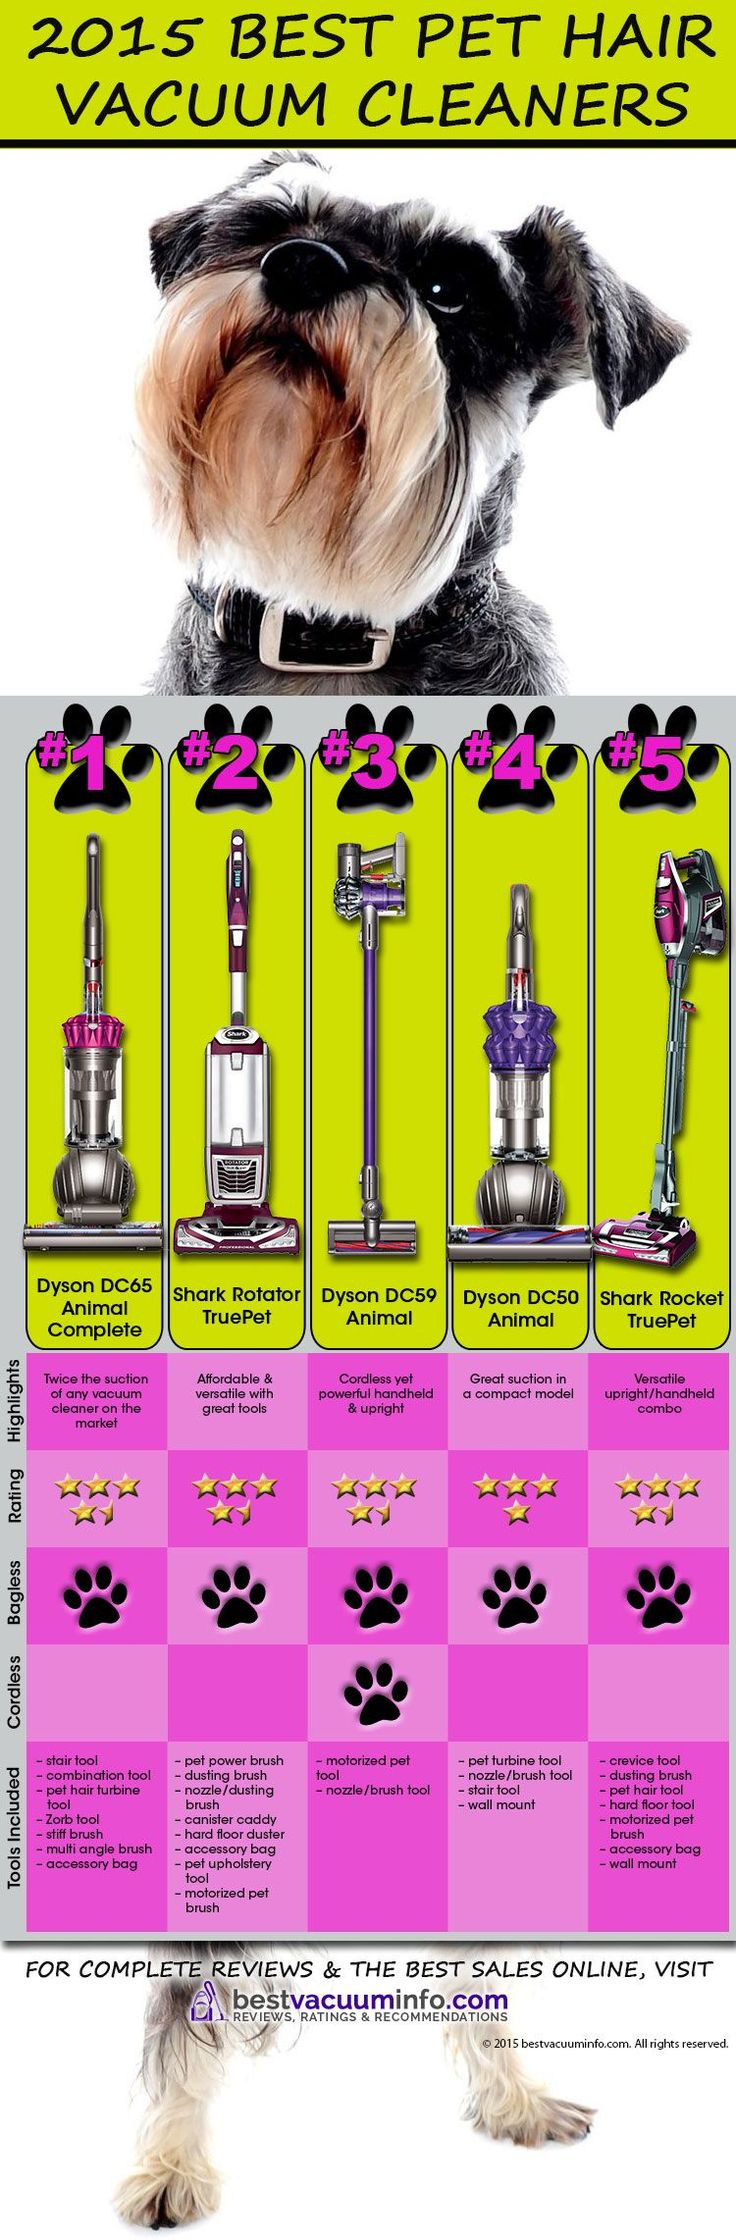 best vacuum for pet hair and hardwood floors 2015 of 13 best for the kitties images on pinterest pets cat stuff and regarding best vacuums for pet hair 2015 infographic see reviews of all the best pet hair